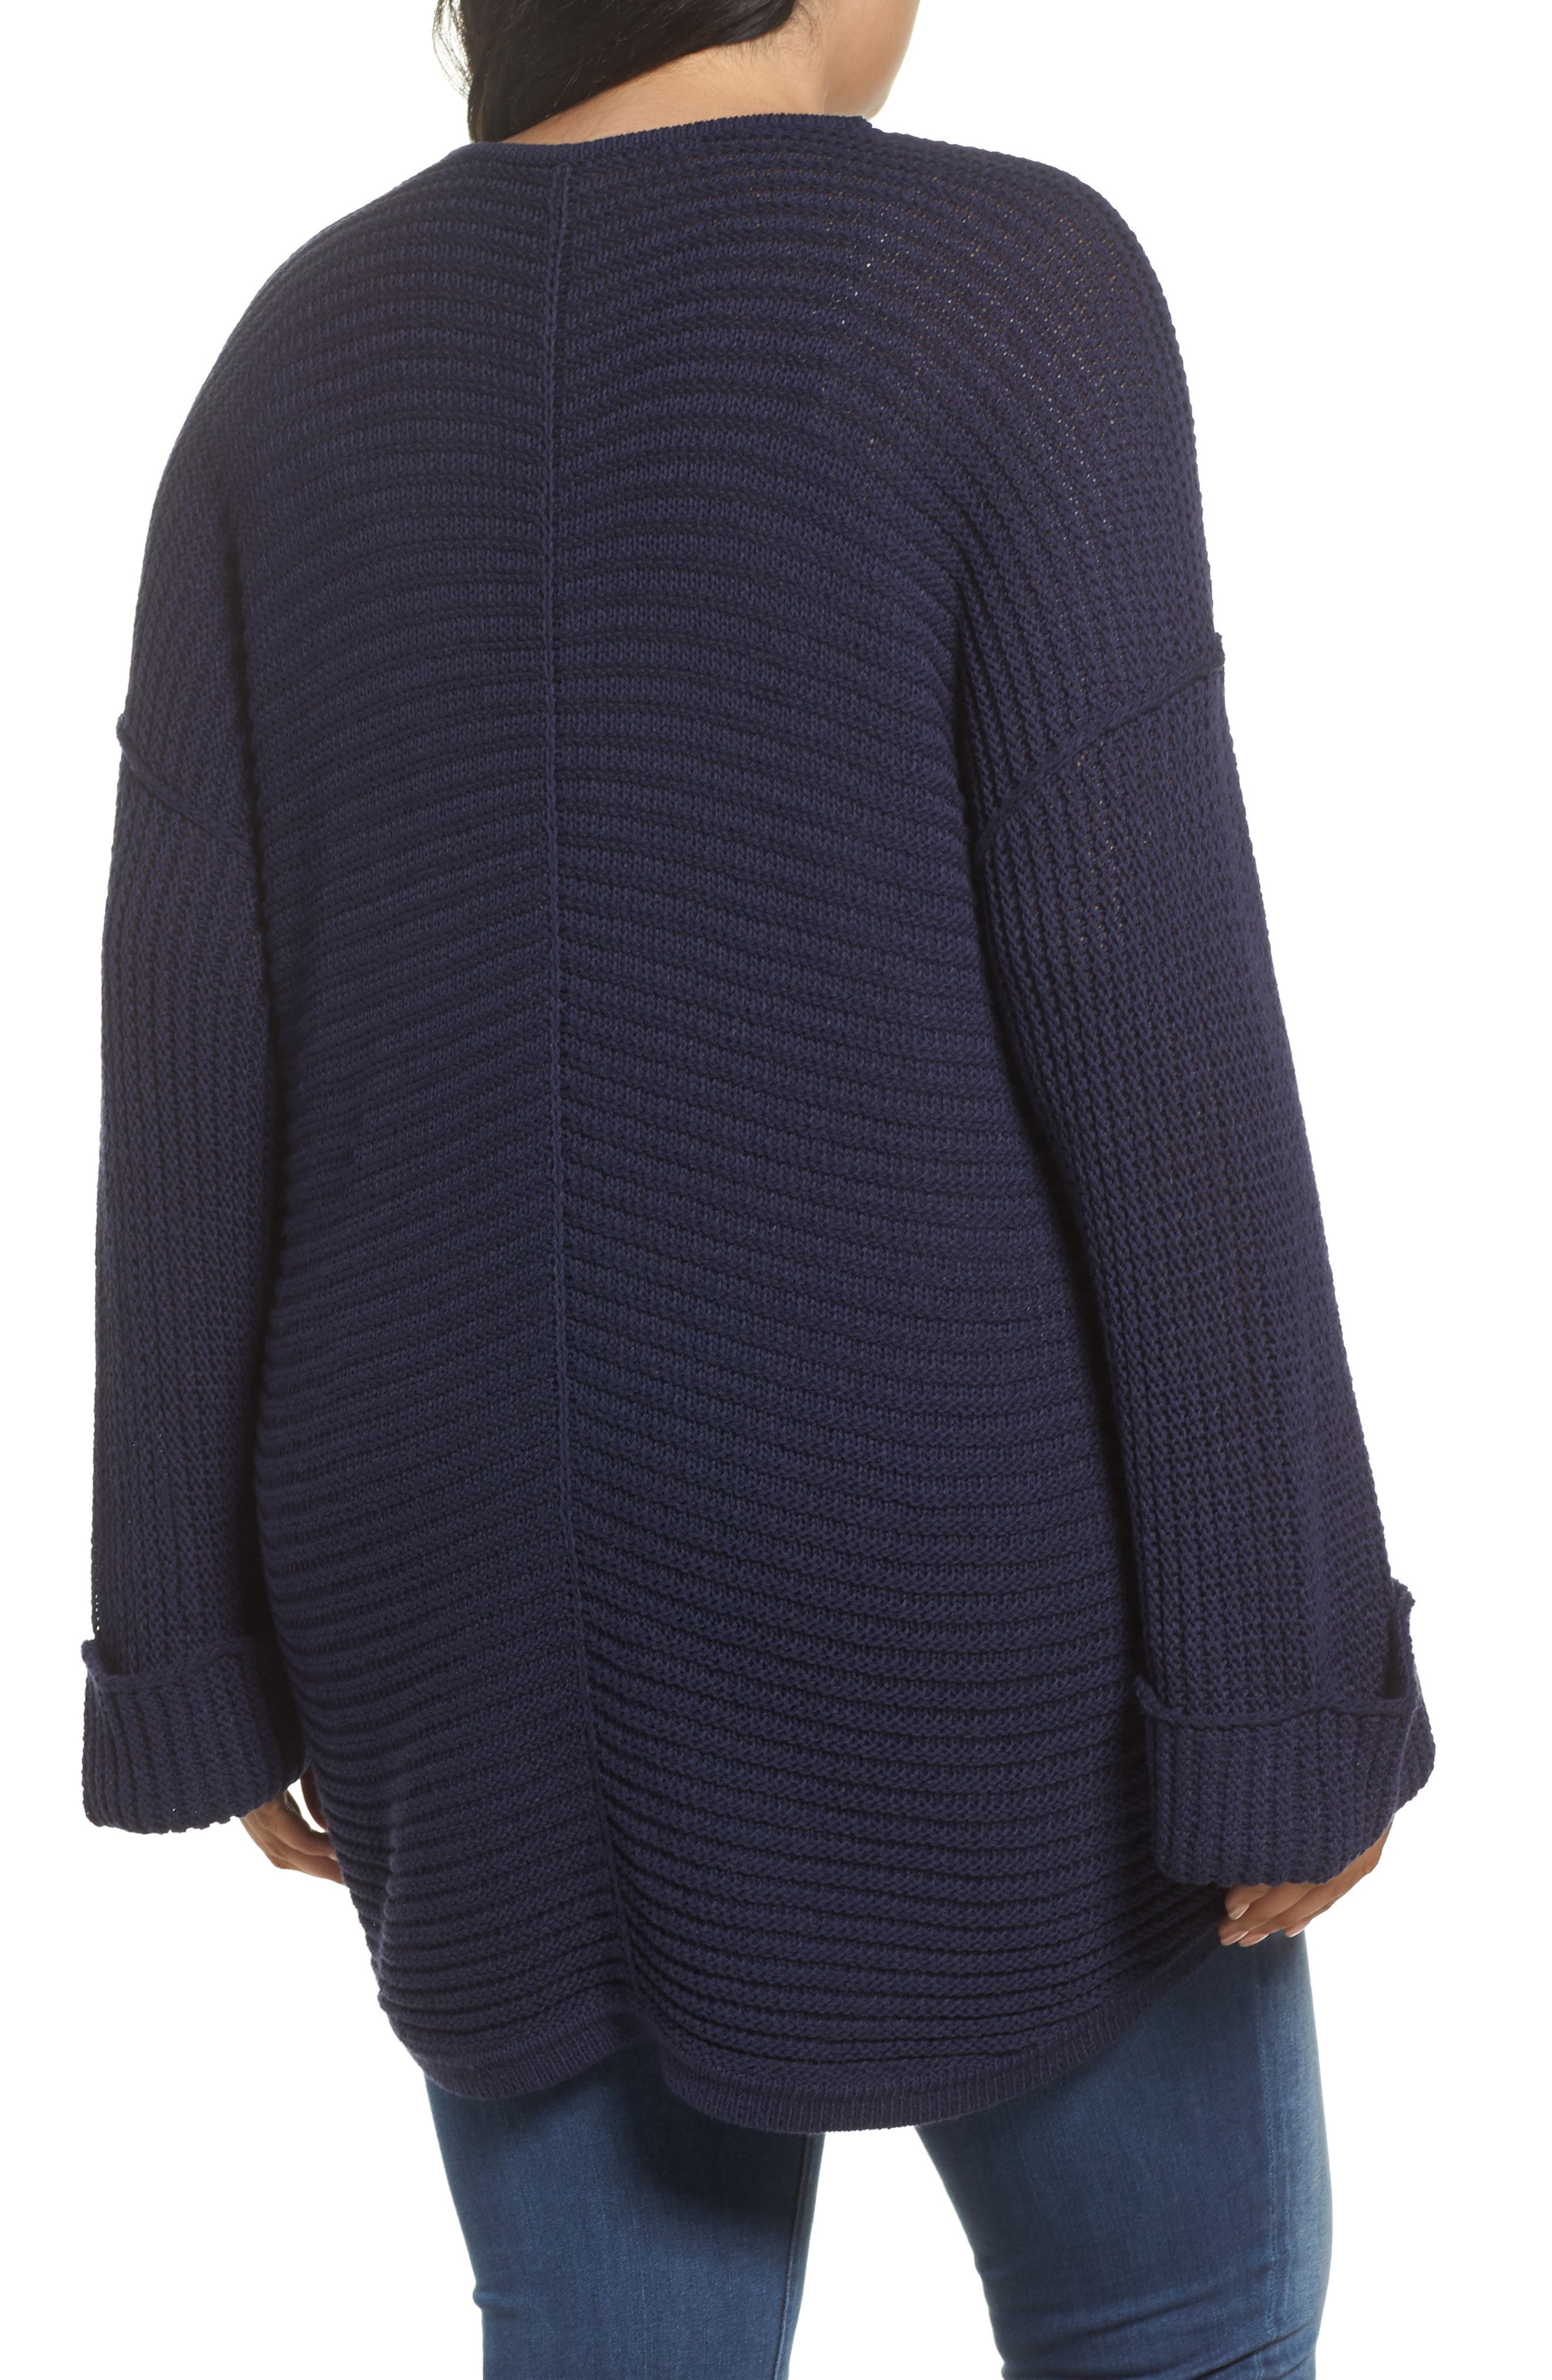 Cuffed Bell Sleeve Sweater,                             Alternate thumbnail 2, color,                             Navy Peacoat